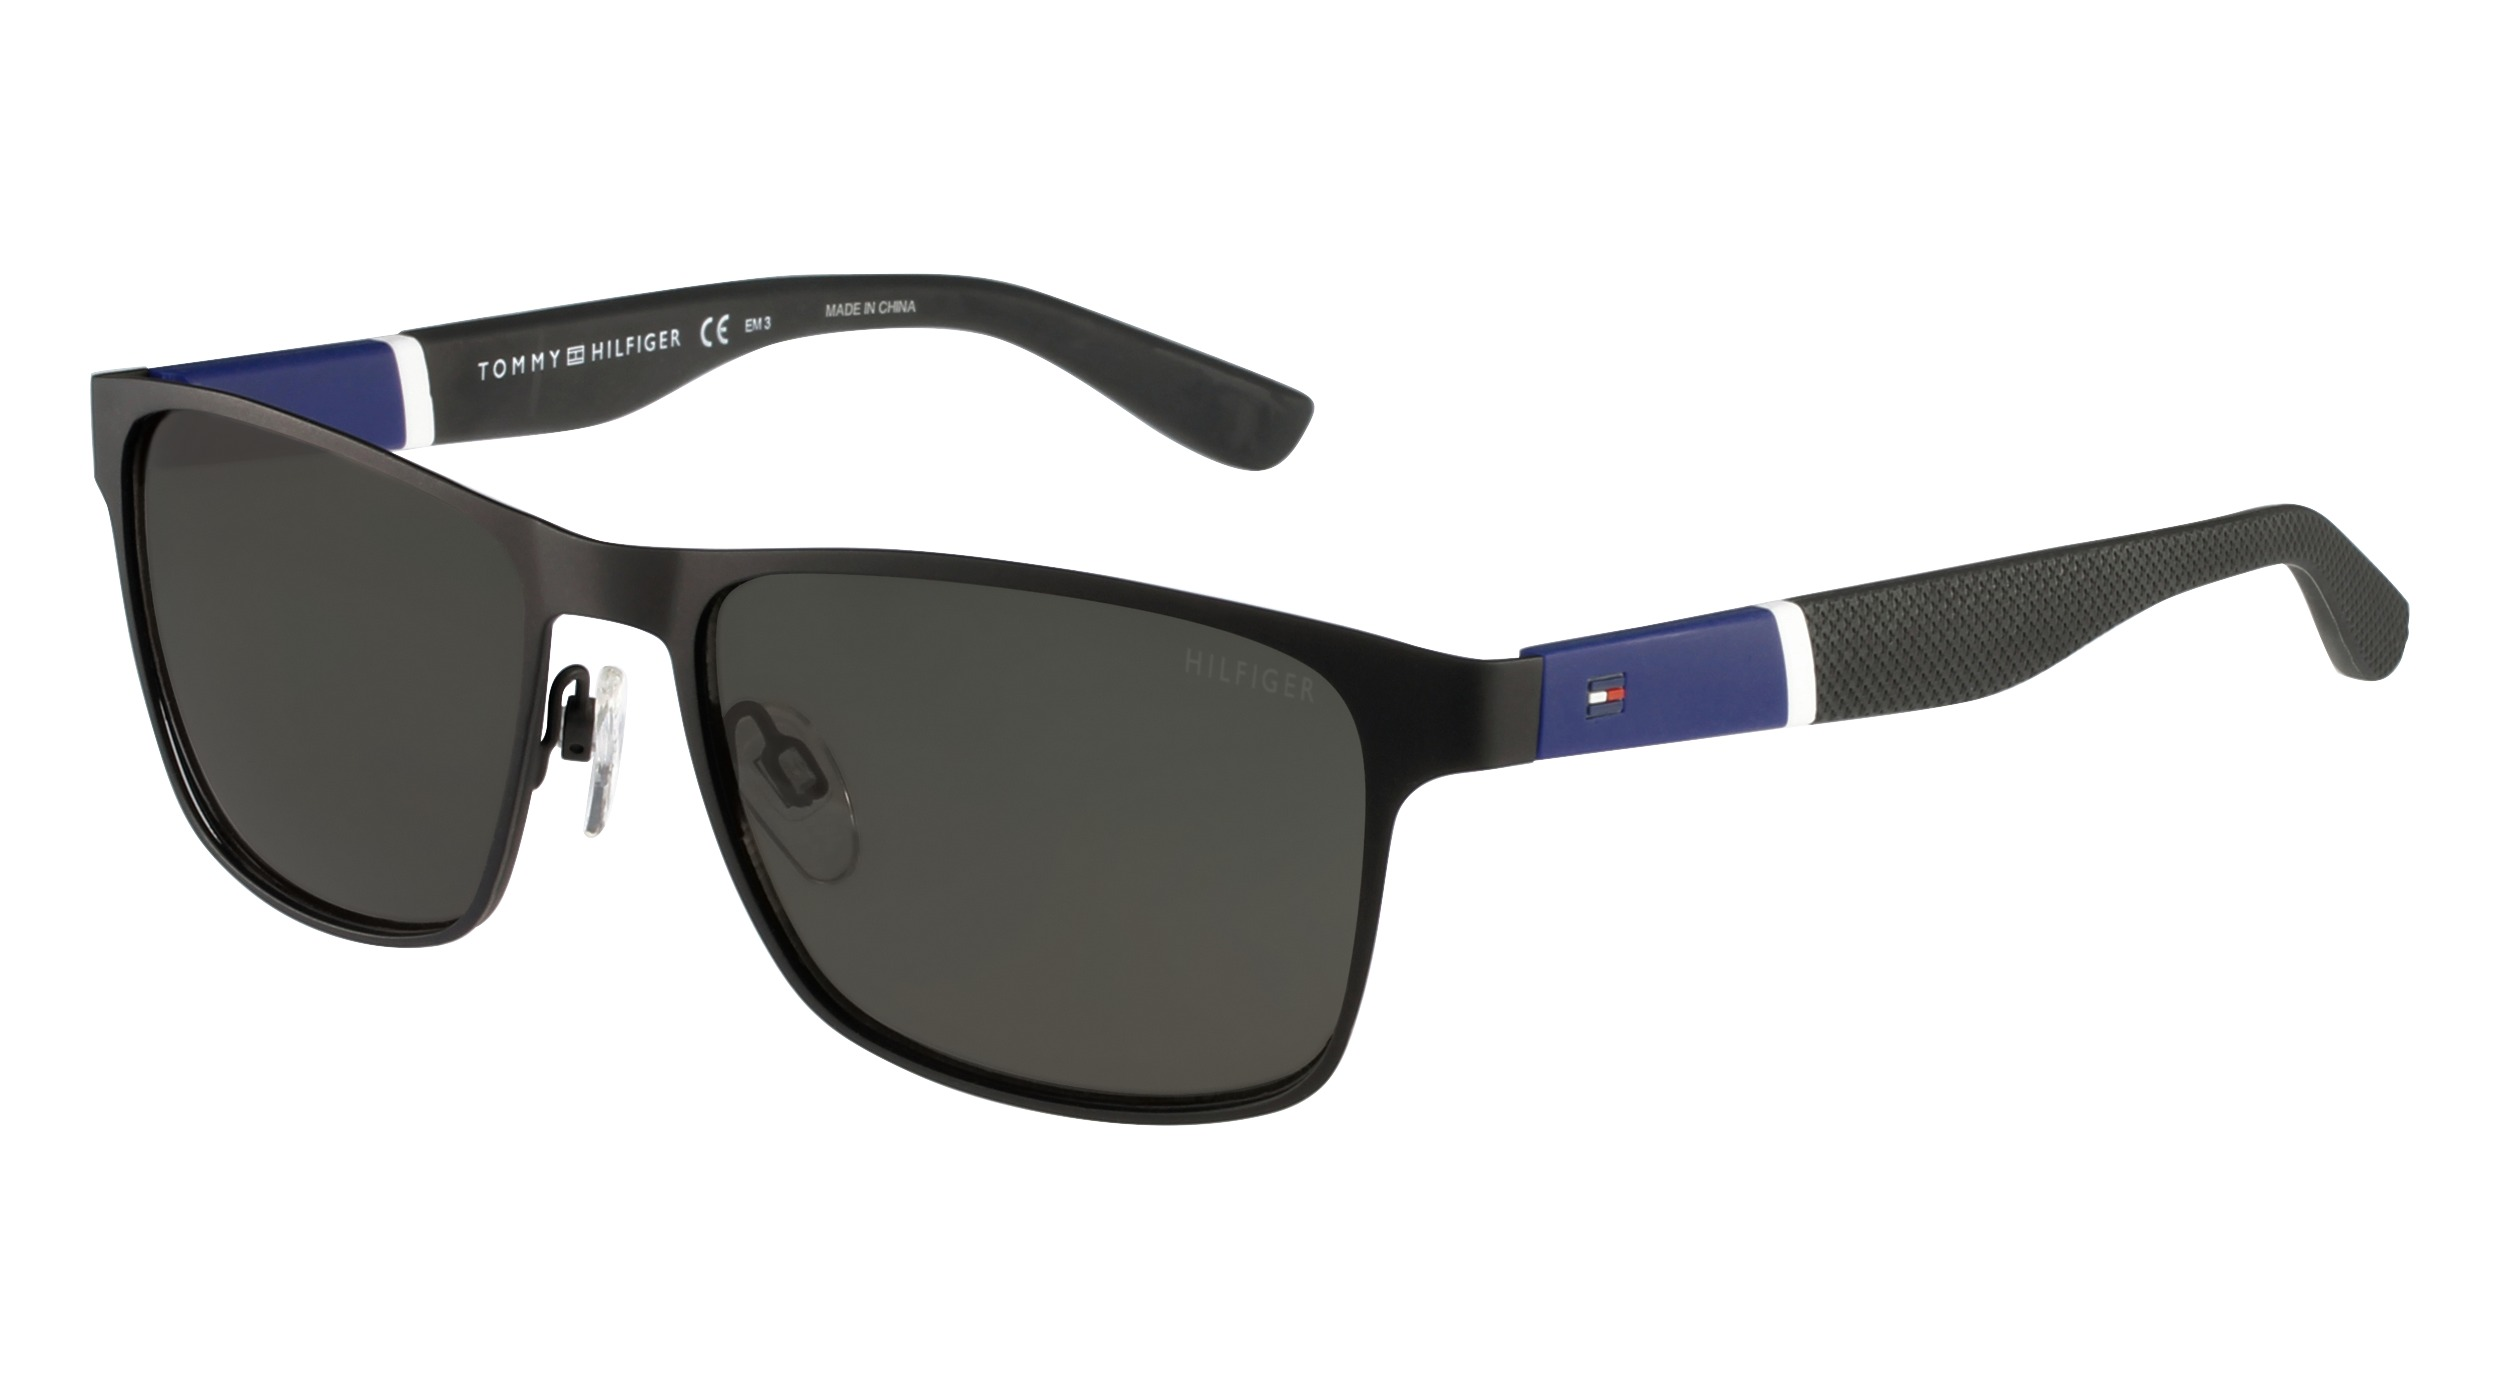 Tommy Hilfiger TH1283S-S-FO3-55-140-NR